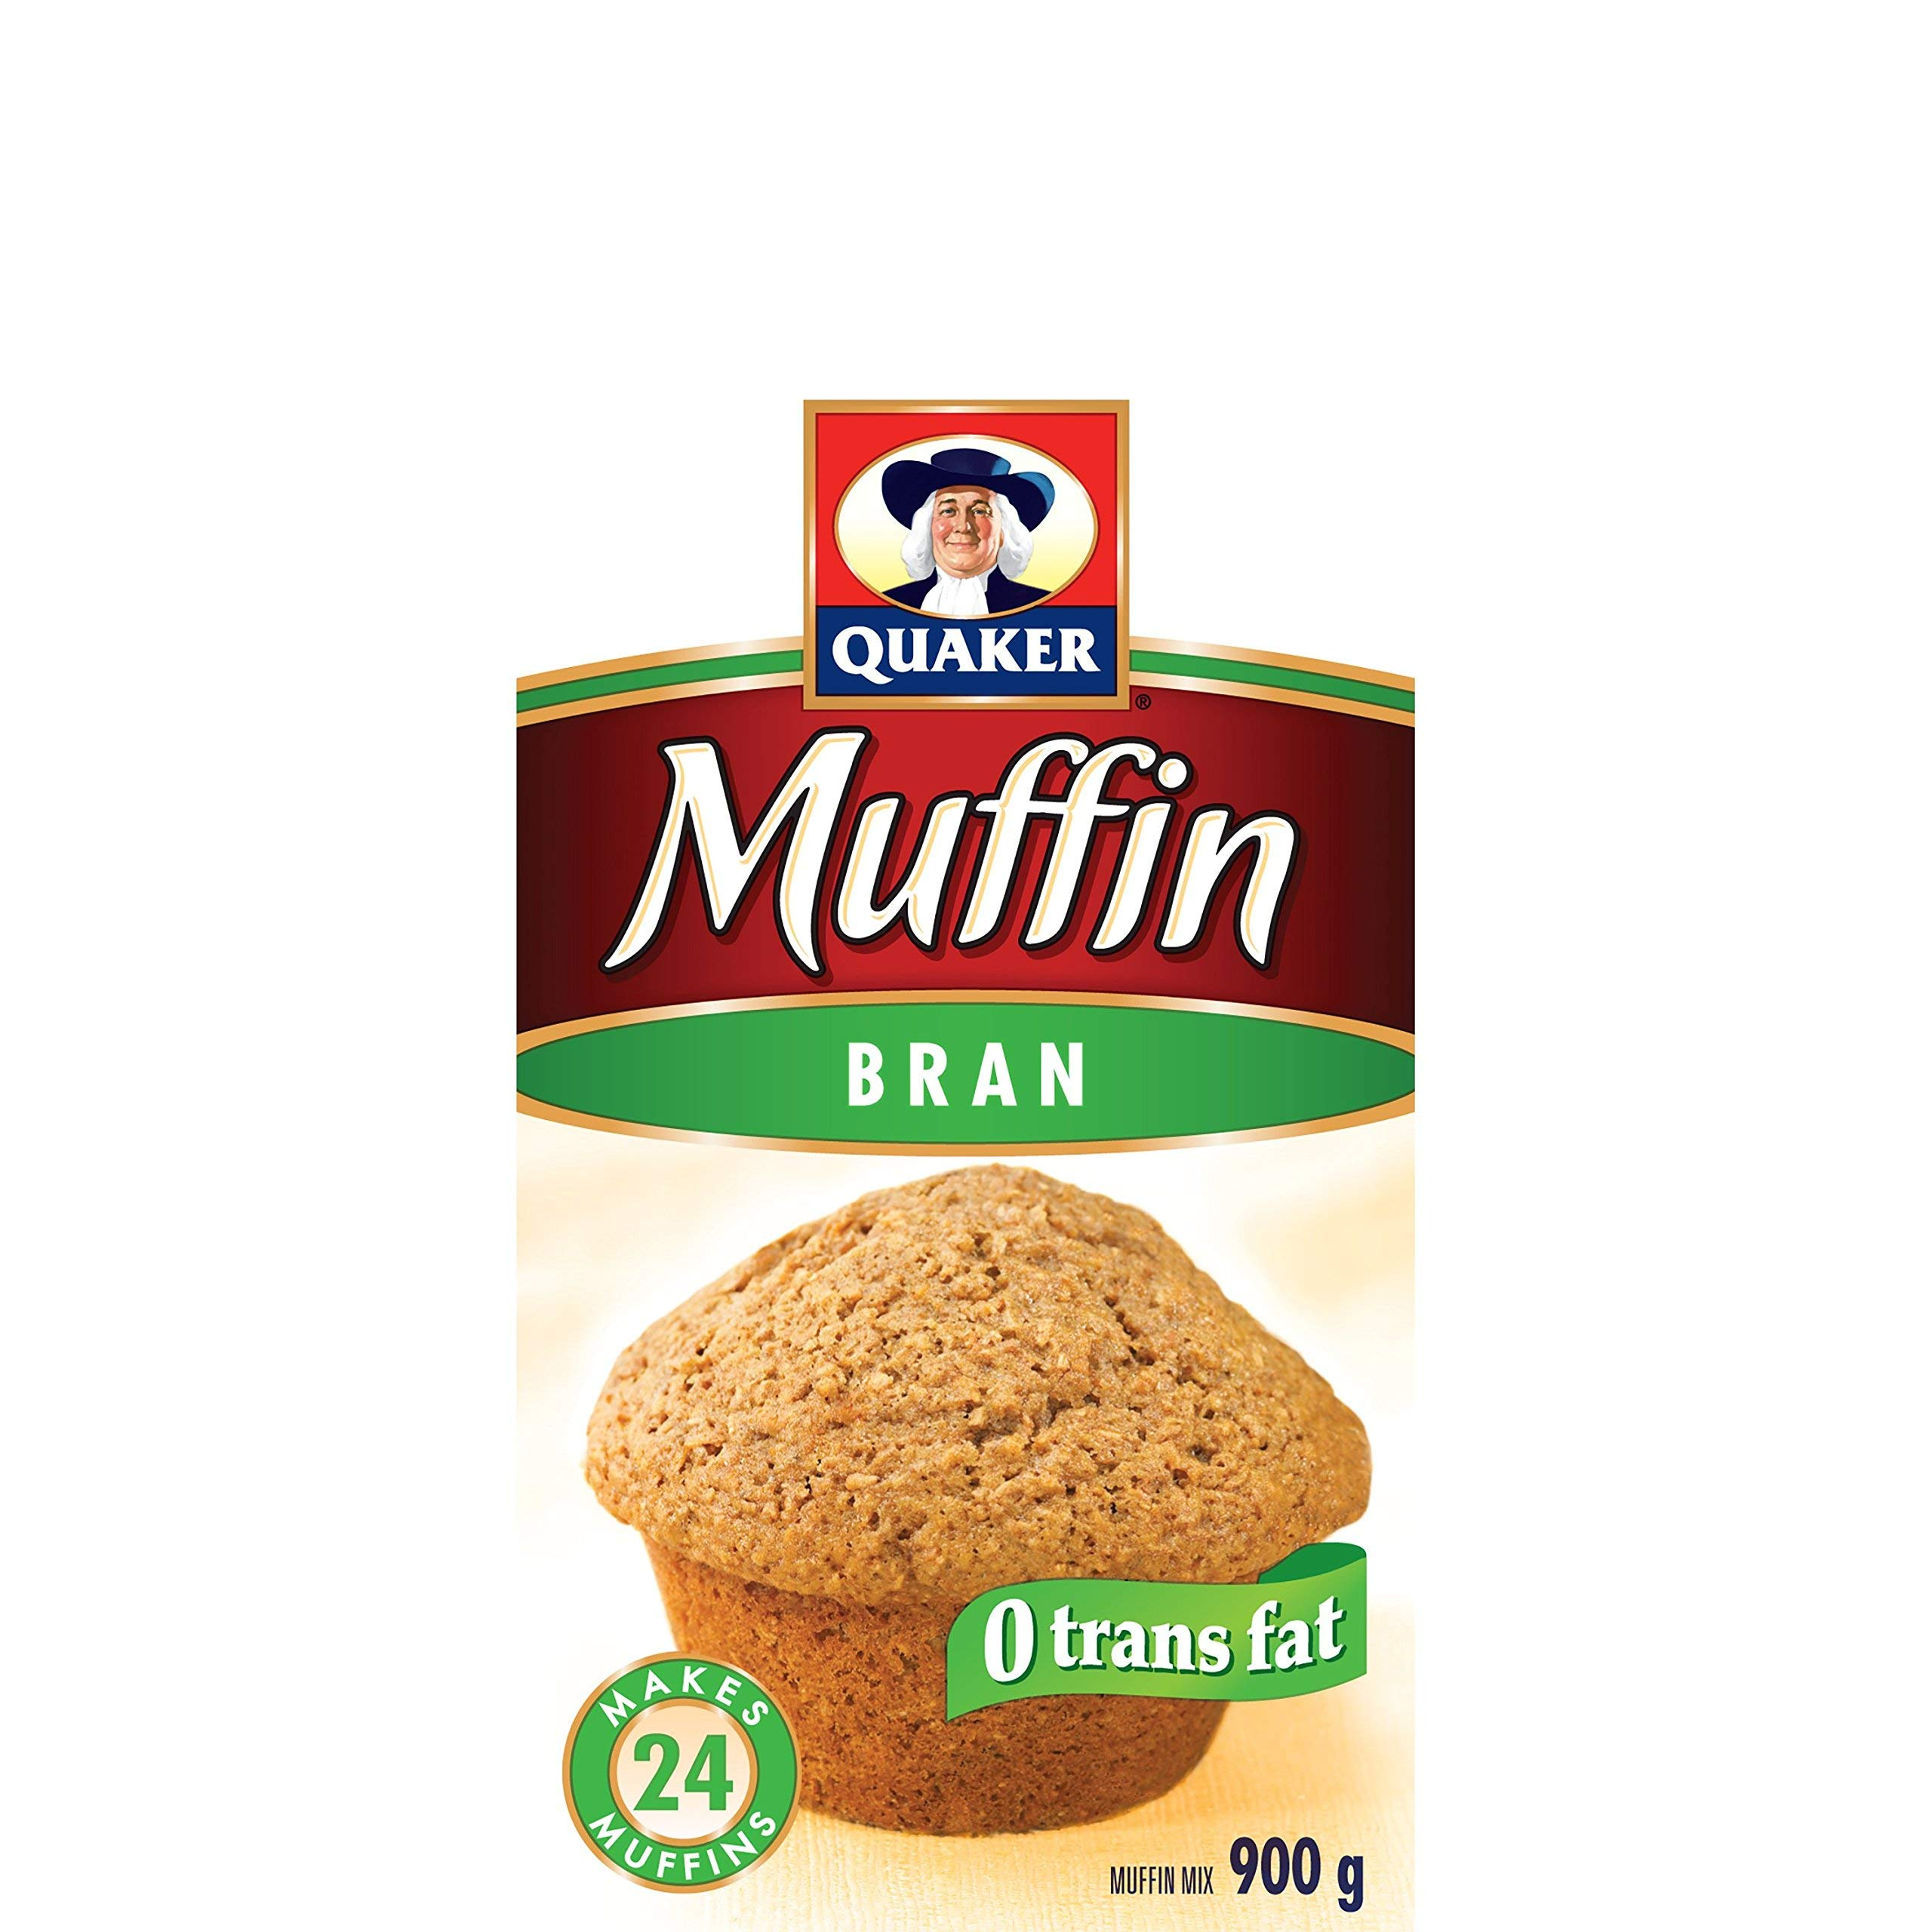 Quaker Muffin Mix Bran, 12ct, 900g, Imported from Canada}